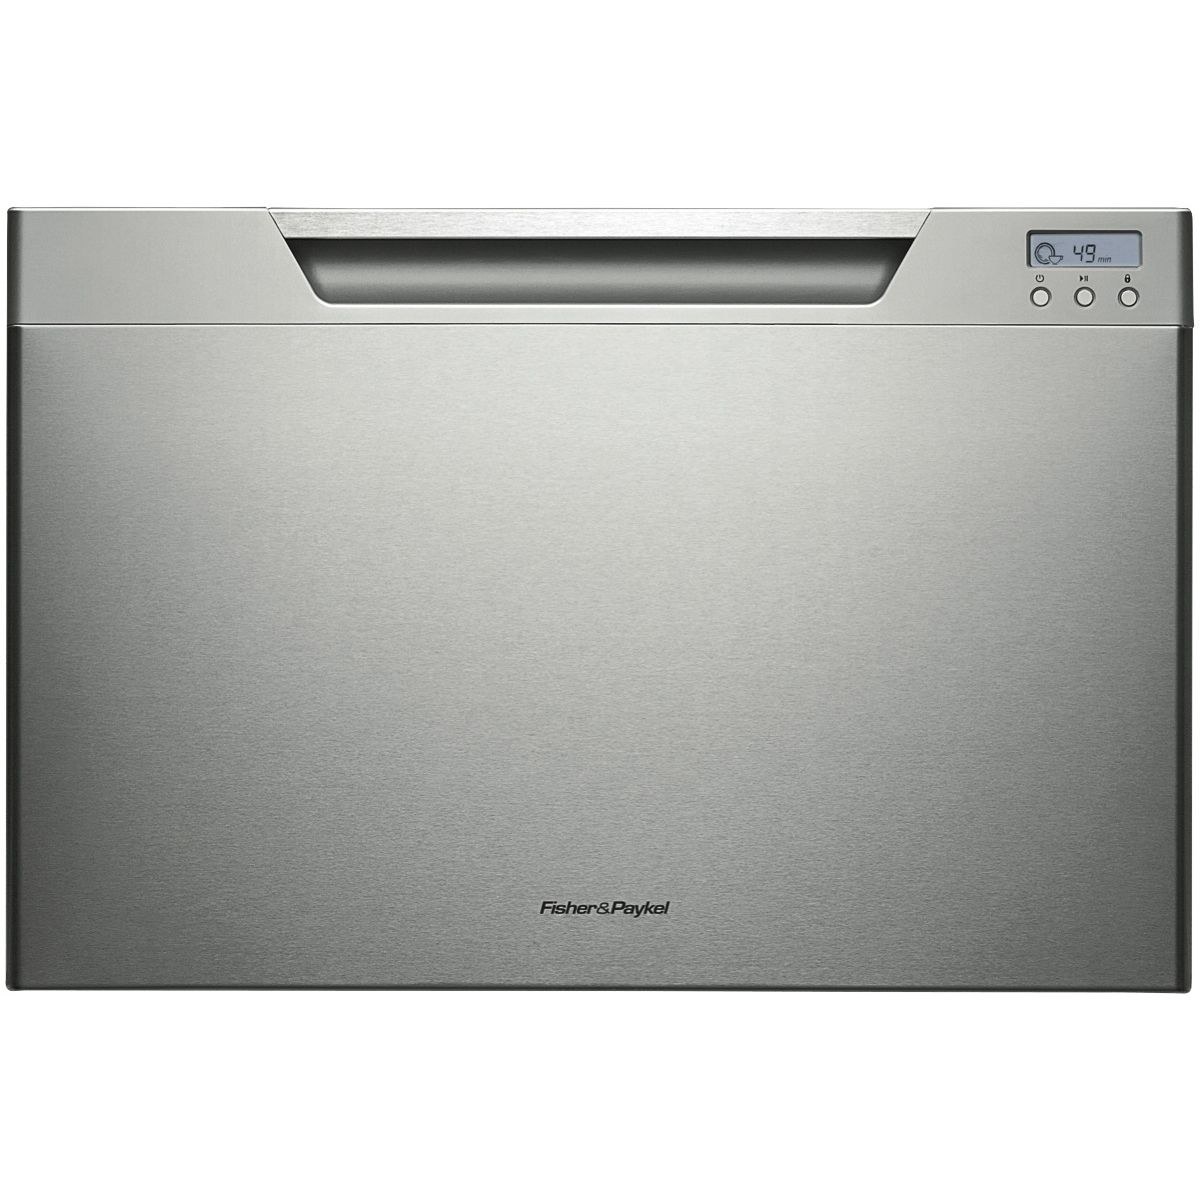 Fisher and paykel 2 drawer dishwasher - Shop Online For Fisher Paykel Dd60scx7 Fisher Paykel Stainless Steel Single Dishdrawer And More